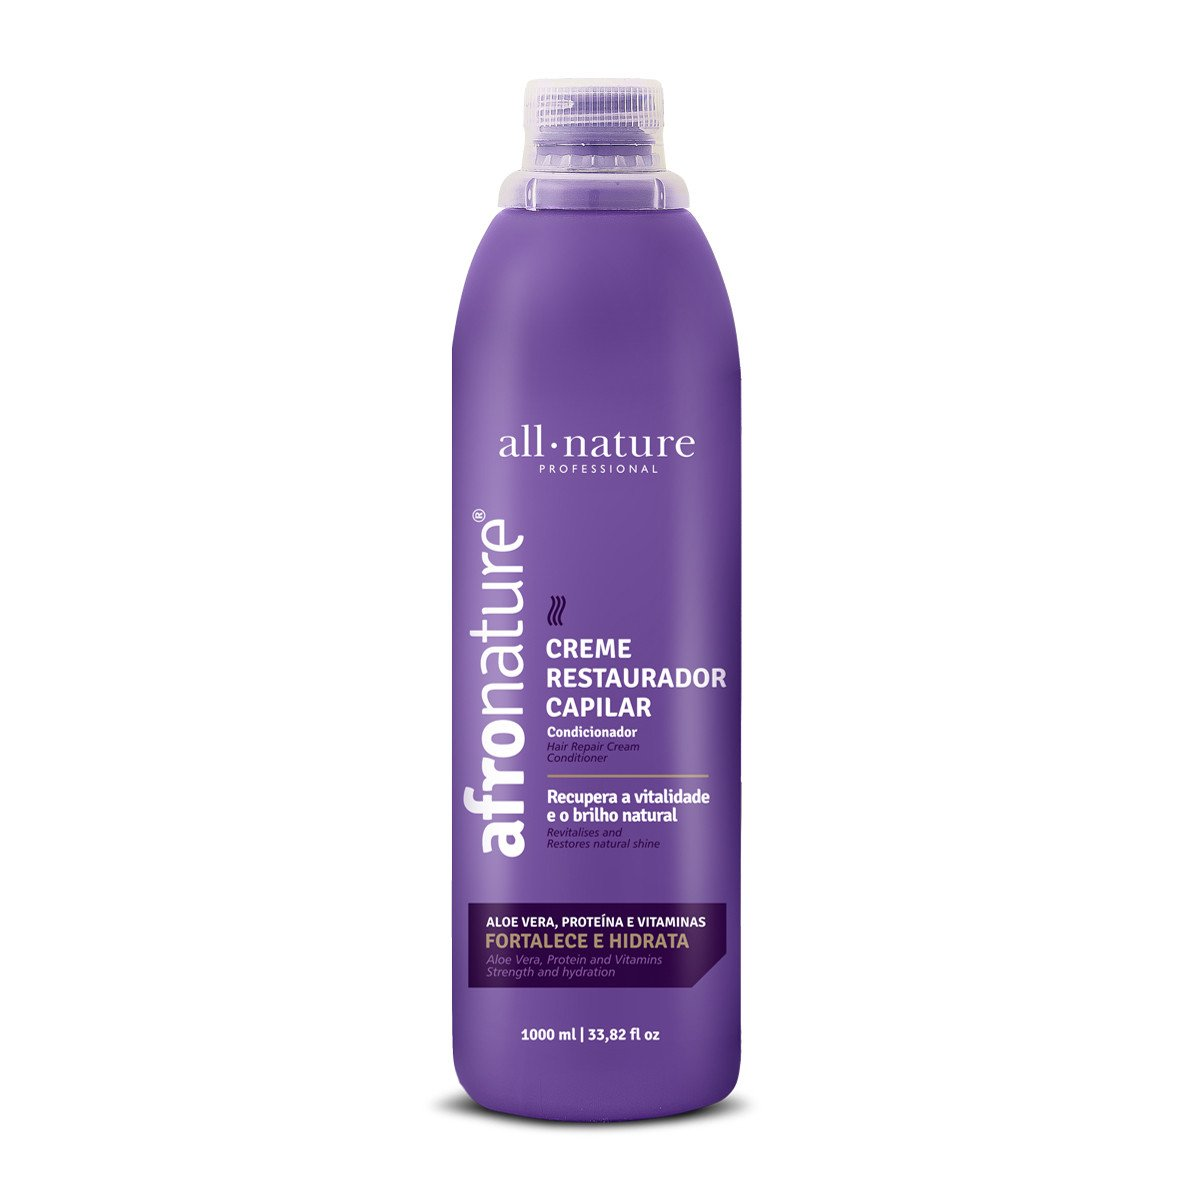 All Nature Brazilian Keratin Treatment Afro Restorative Aloe Vera Revitalizes Natural Shine Cream 1000ml - All Nature